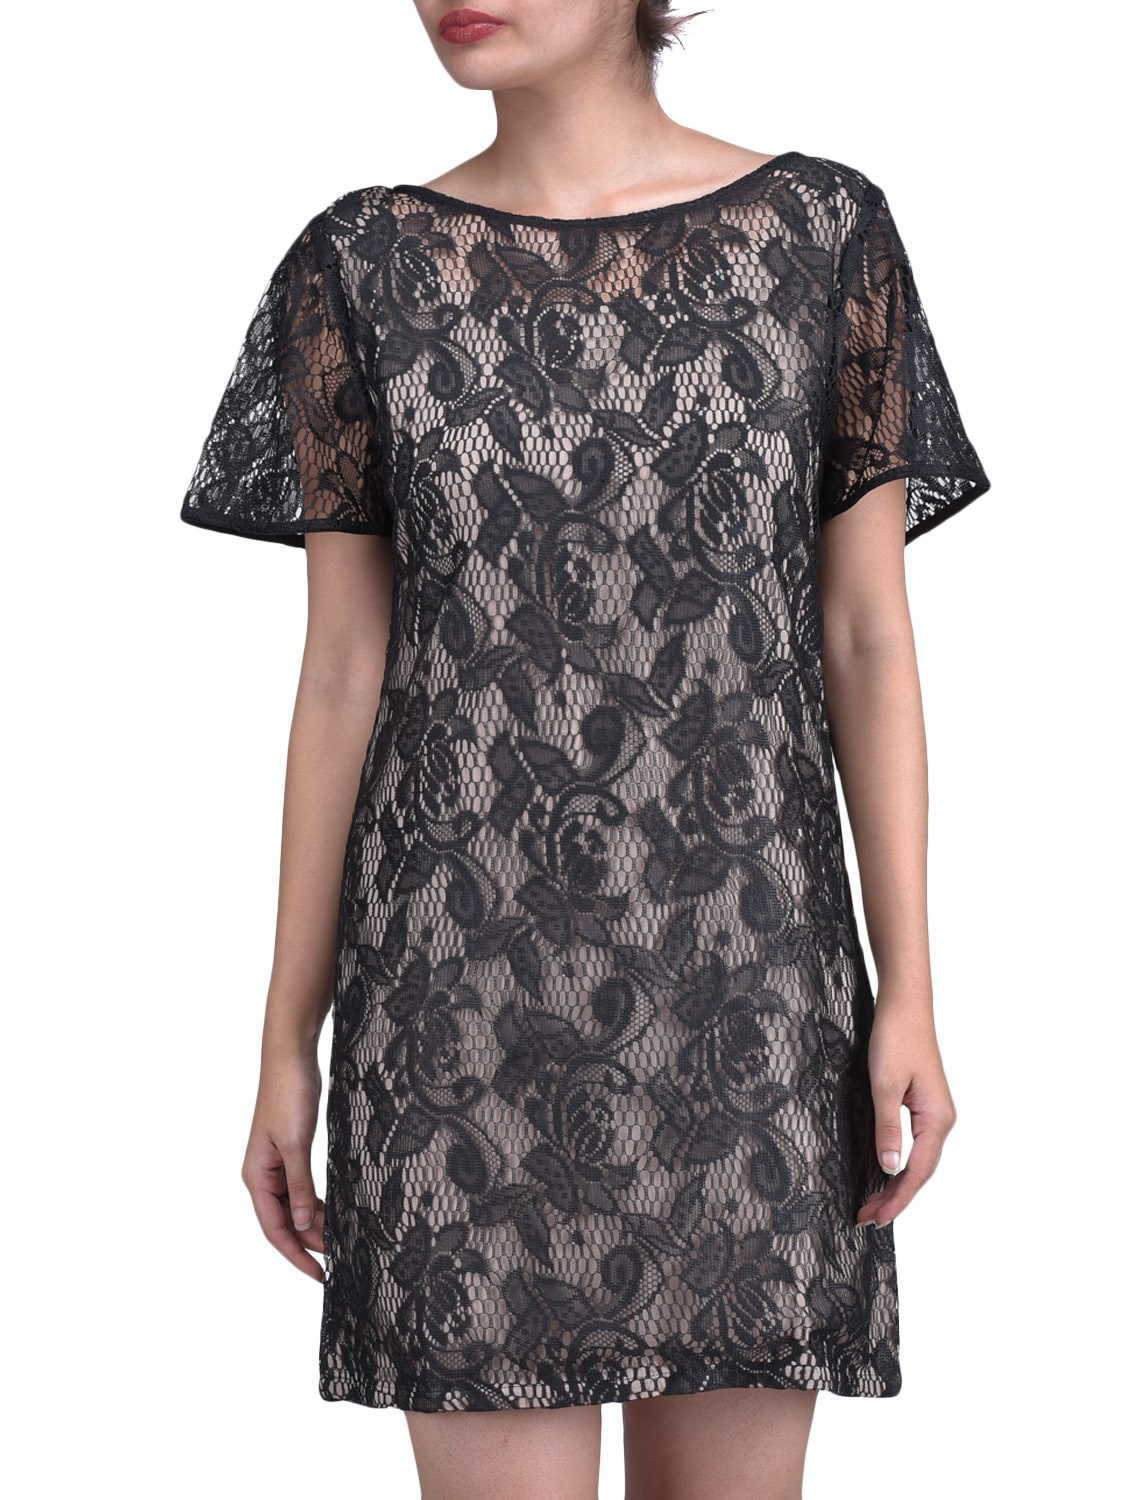 Black Floral Satin Lace Dress - By